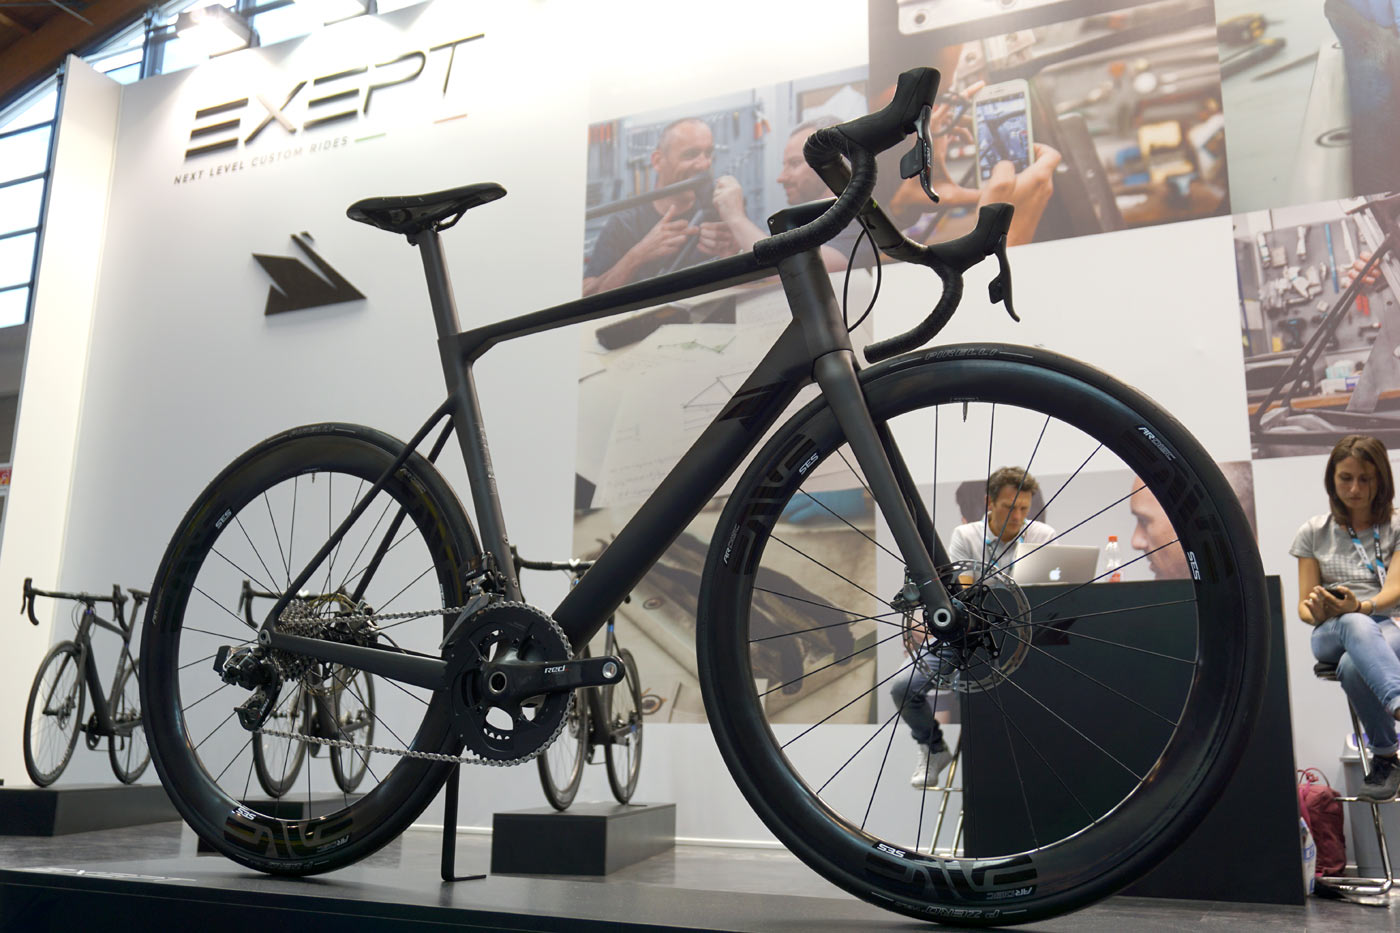 Exept custom monocoque carbon fiber road bikes use a unique sizing system to deliver the perfect fit and geometry